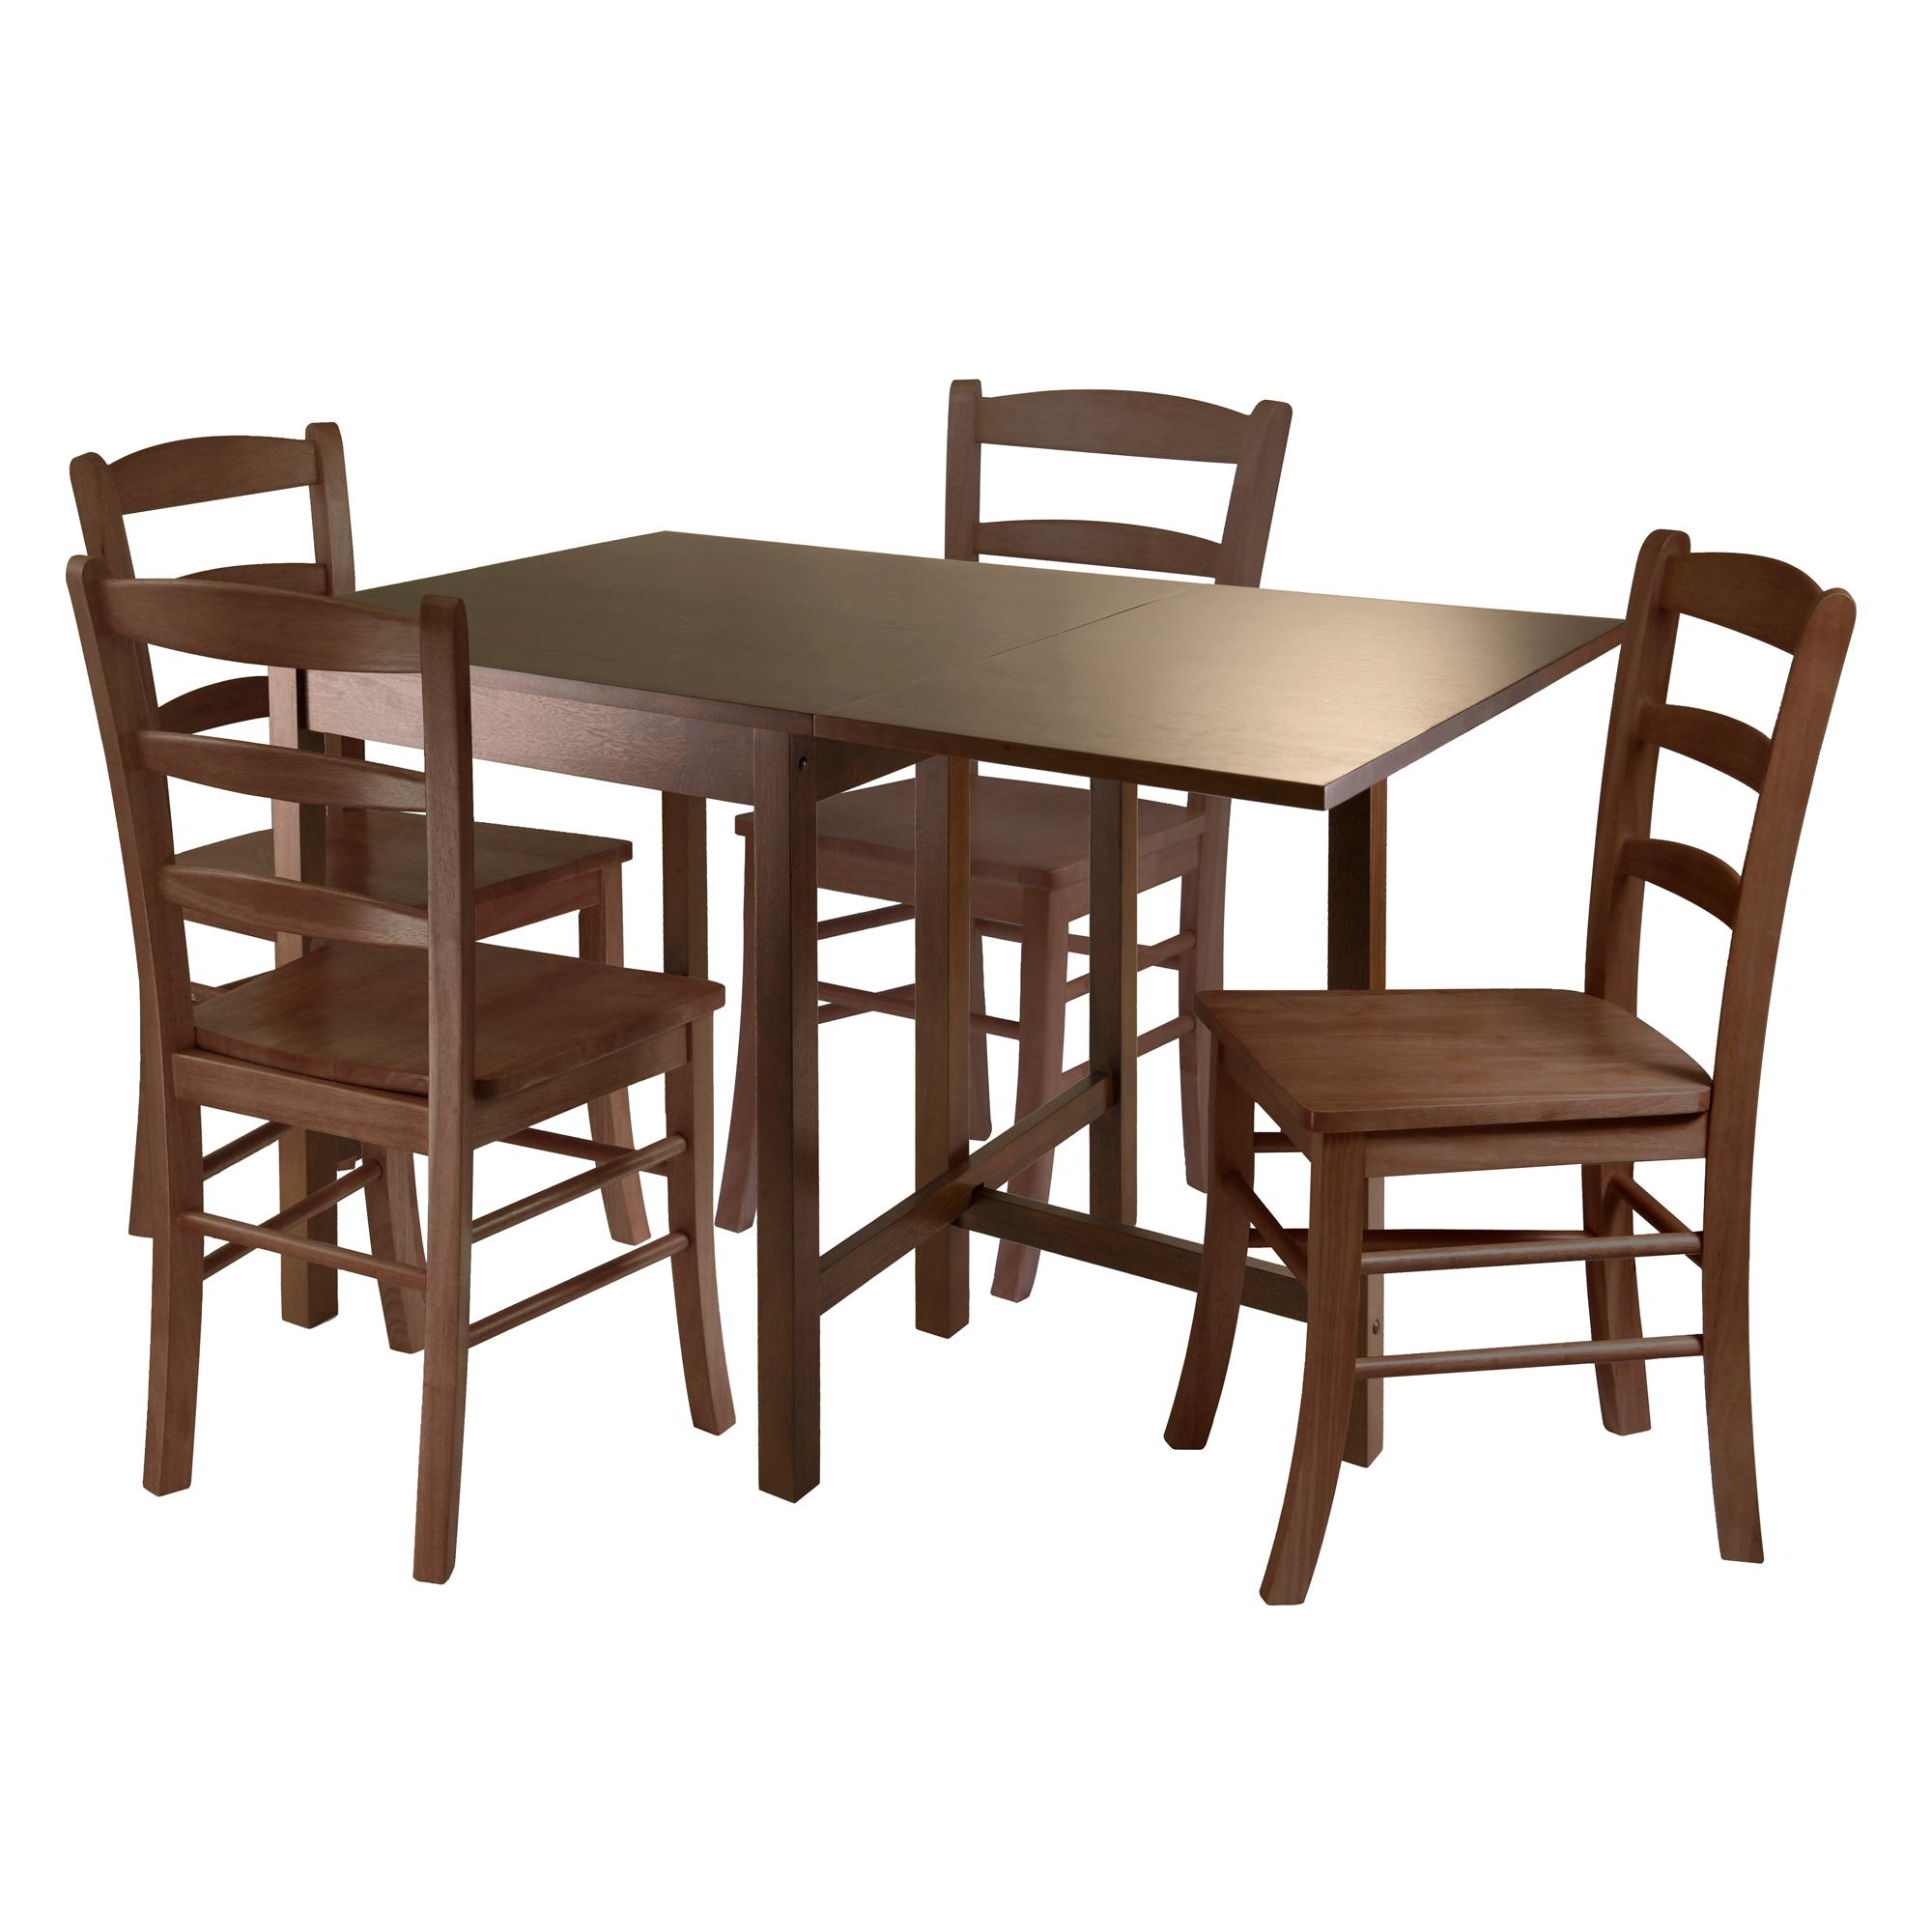 Shopko Kitchen Tables Amazon winsome wood lynden 5 piece dining table with 4 ladder view larger workwithnaturefo